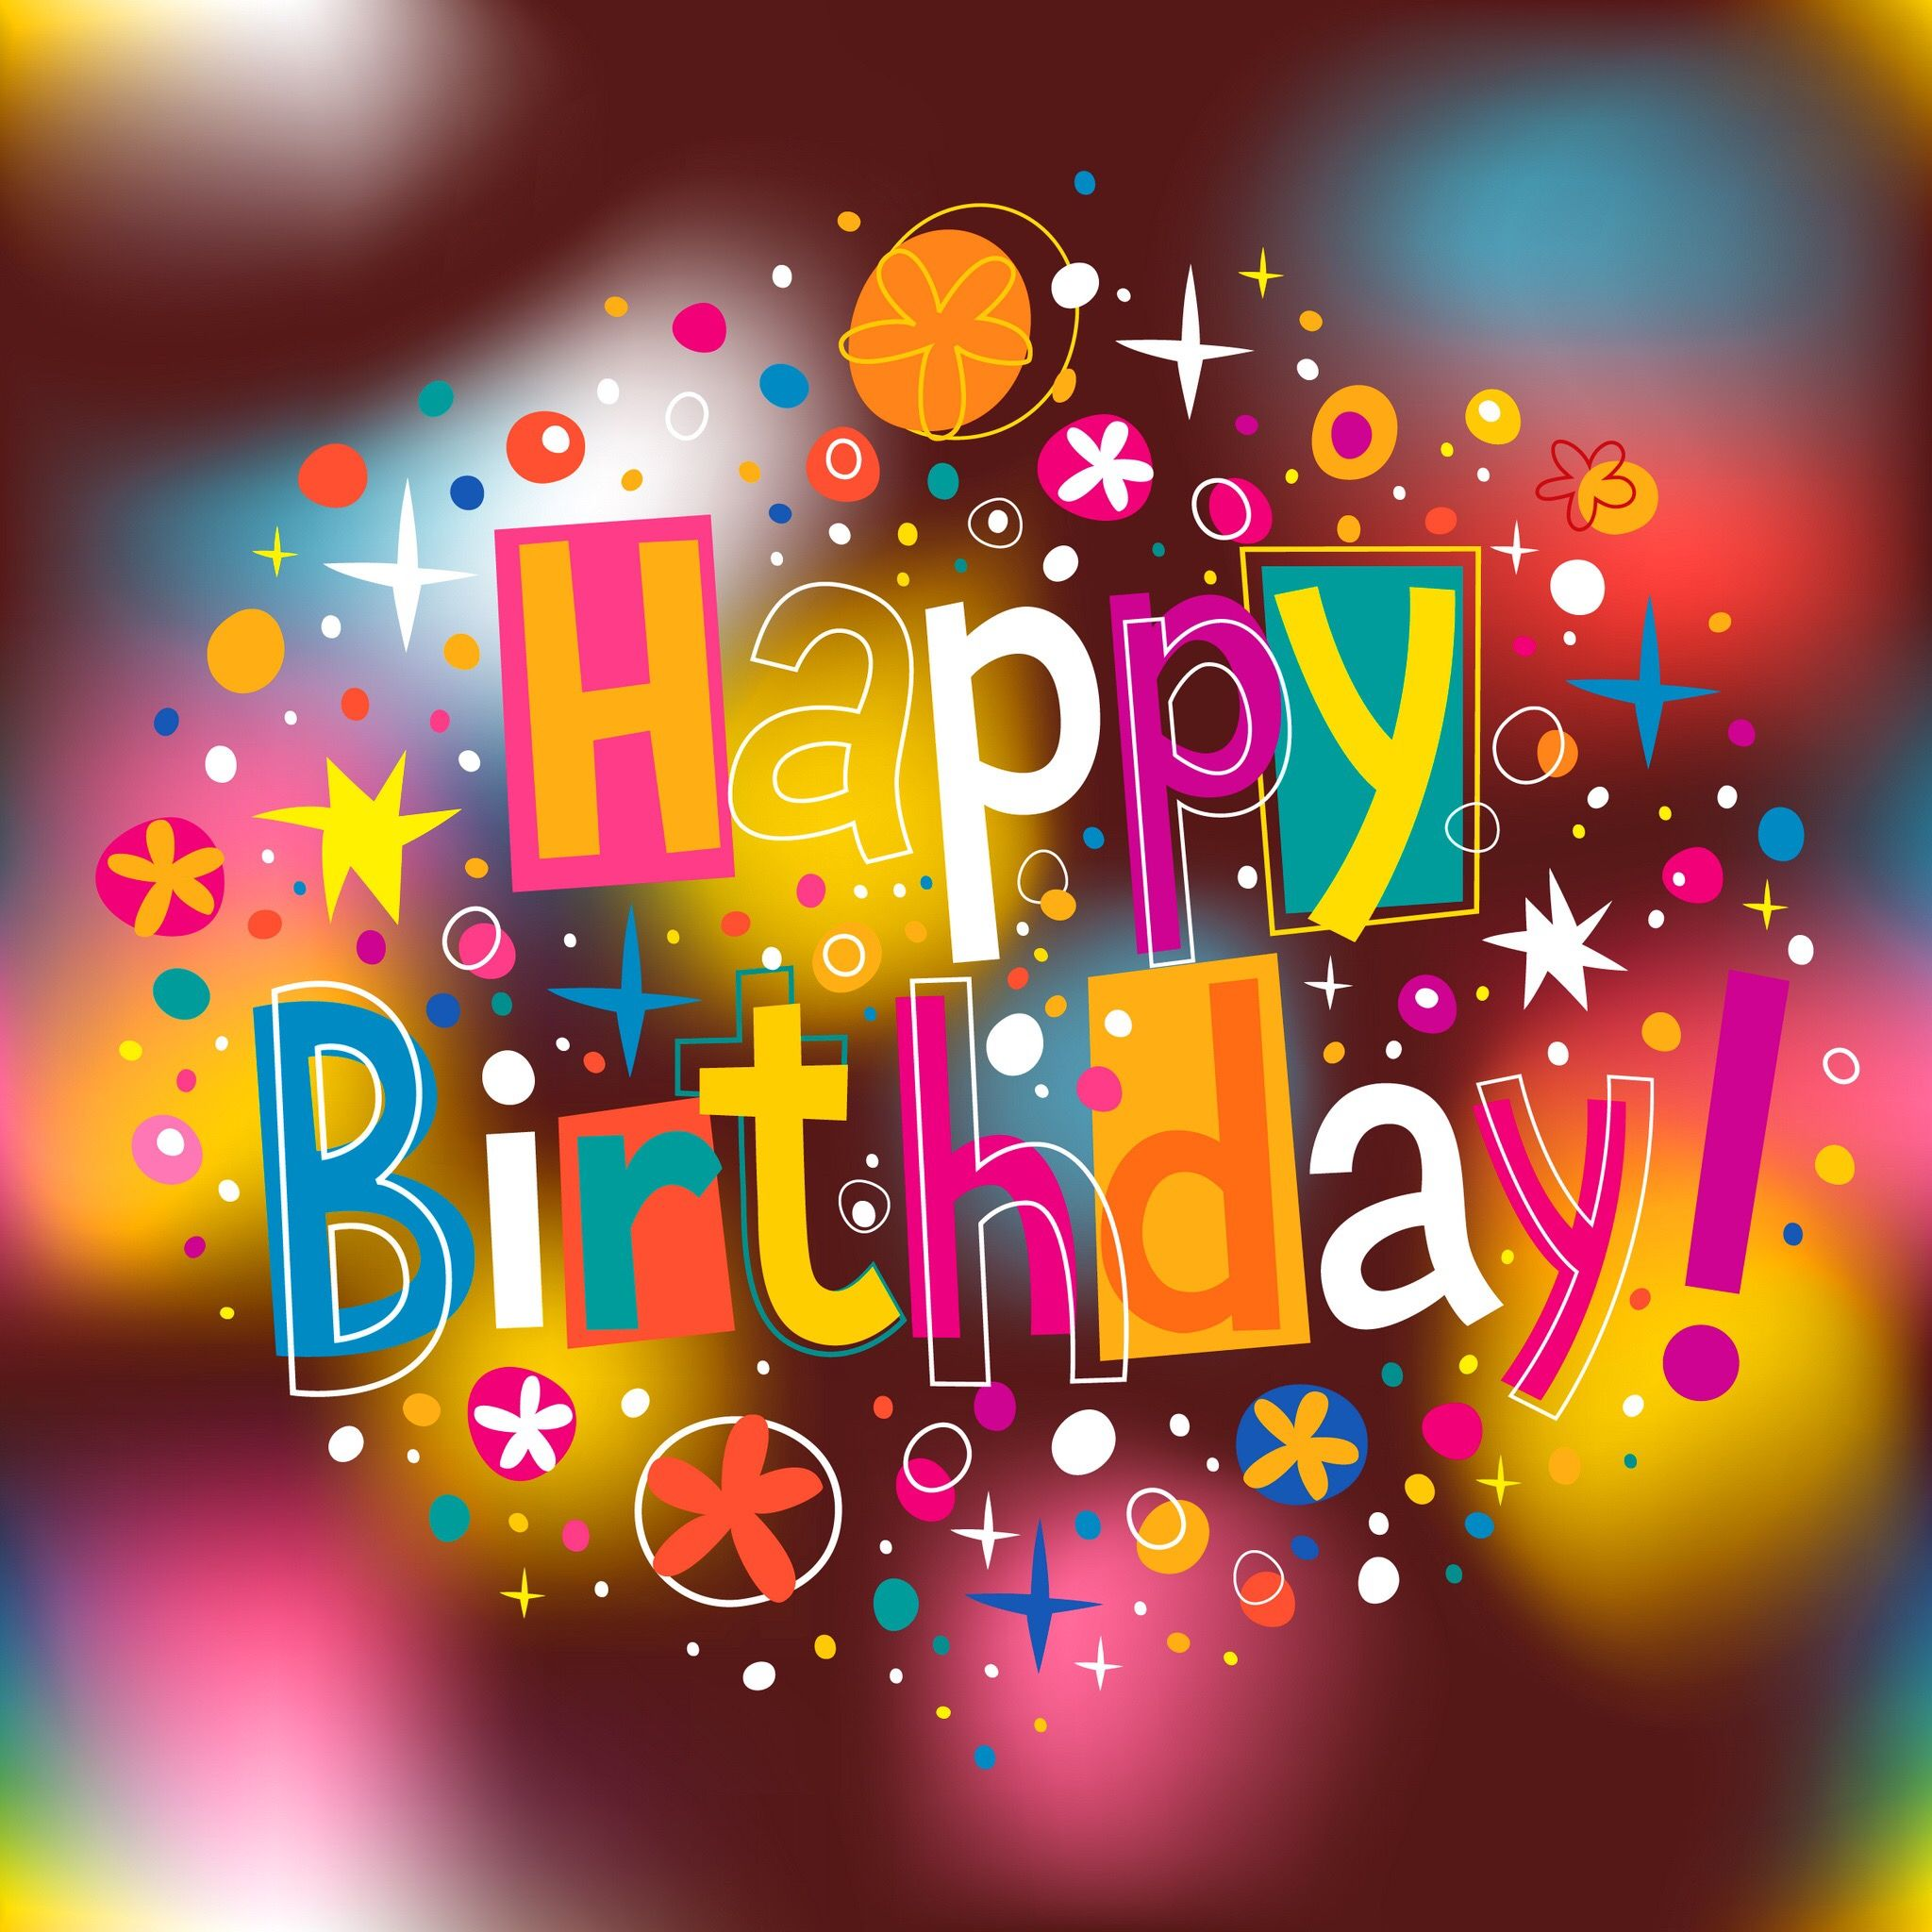 best Birthday quotes – Greetings of Happy Birthday